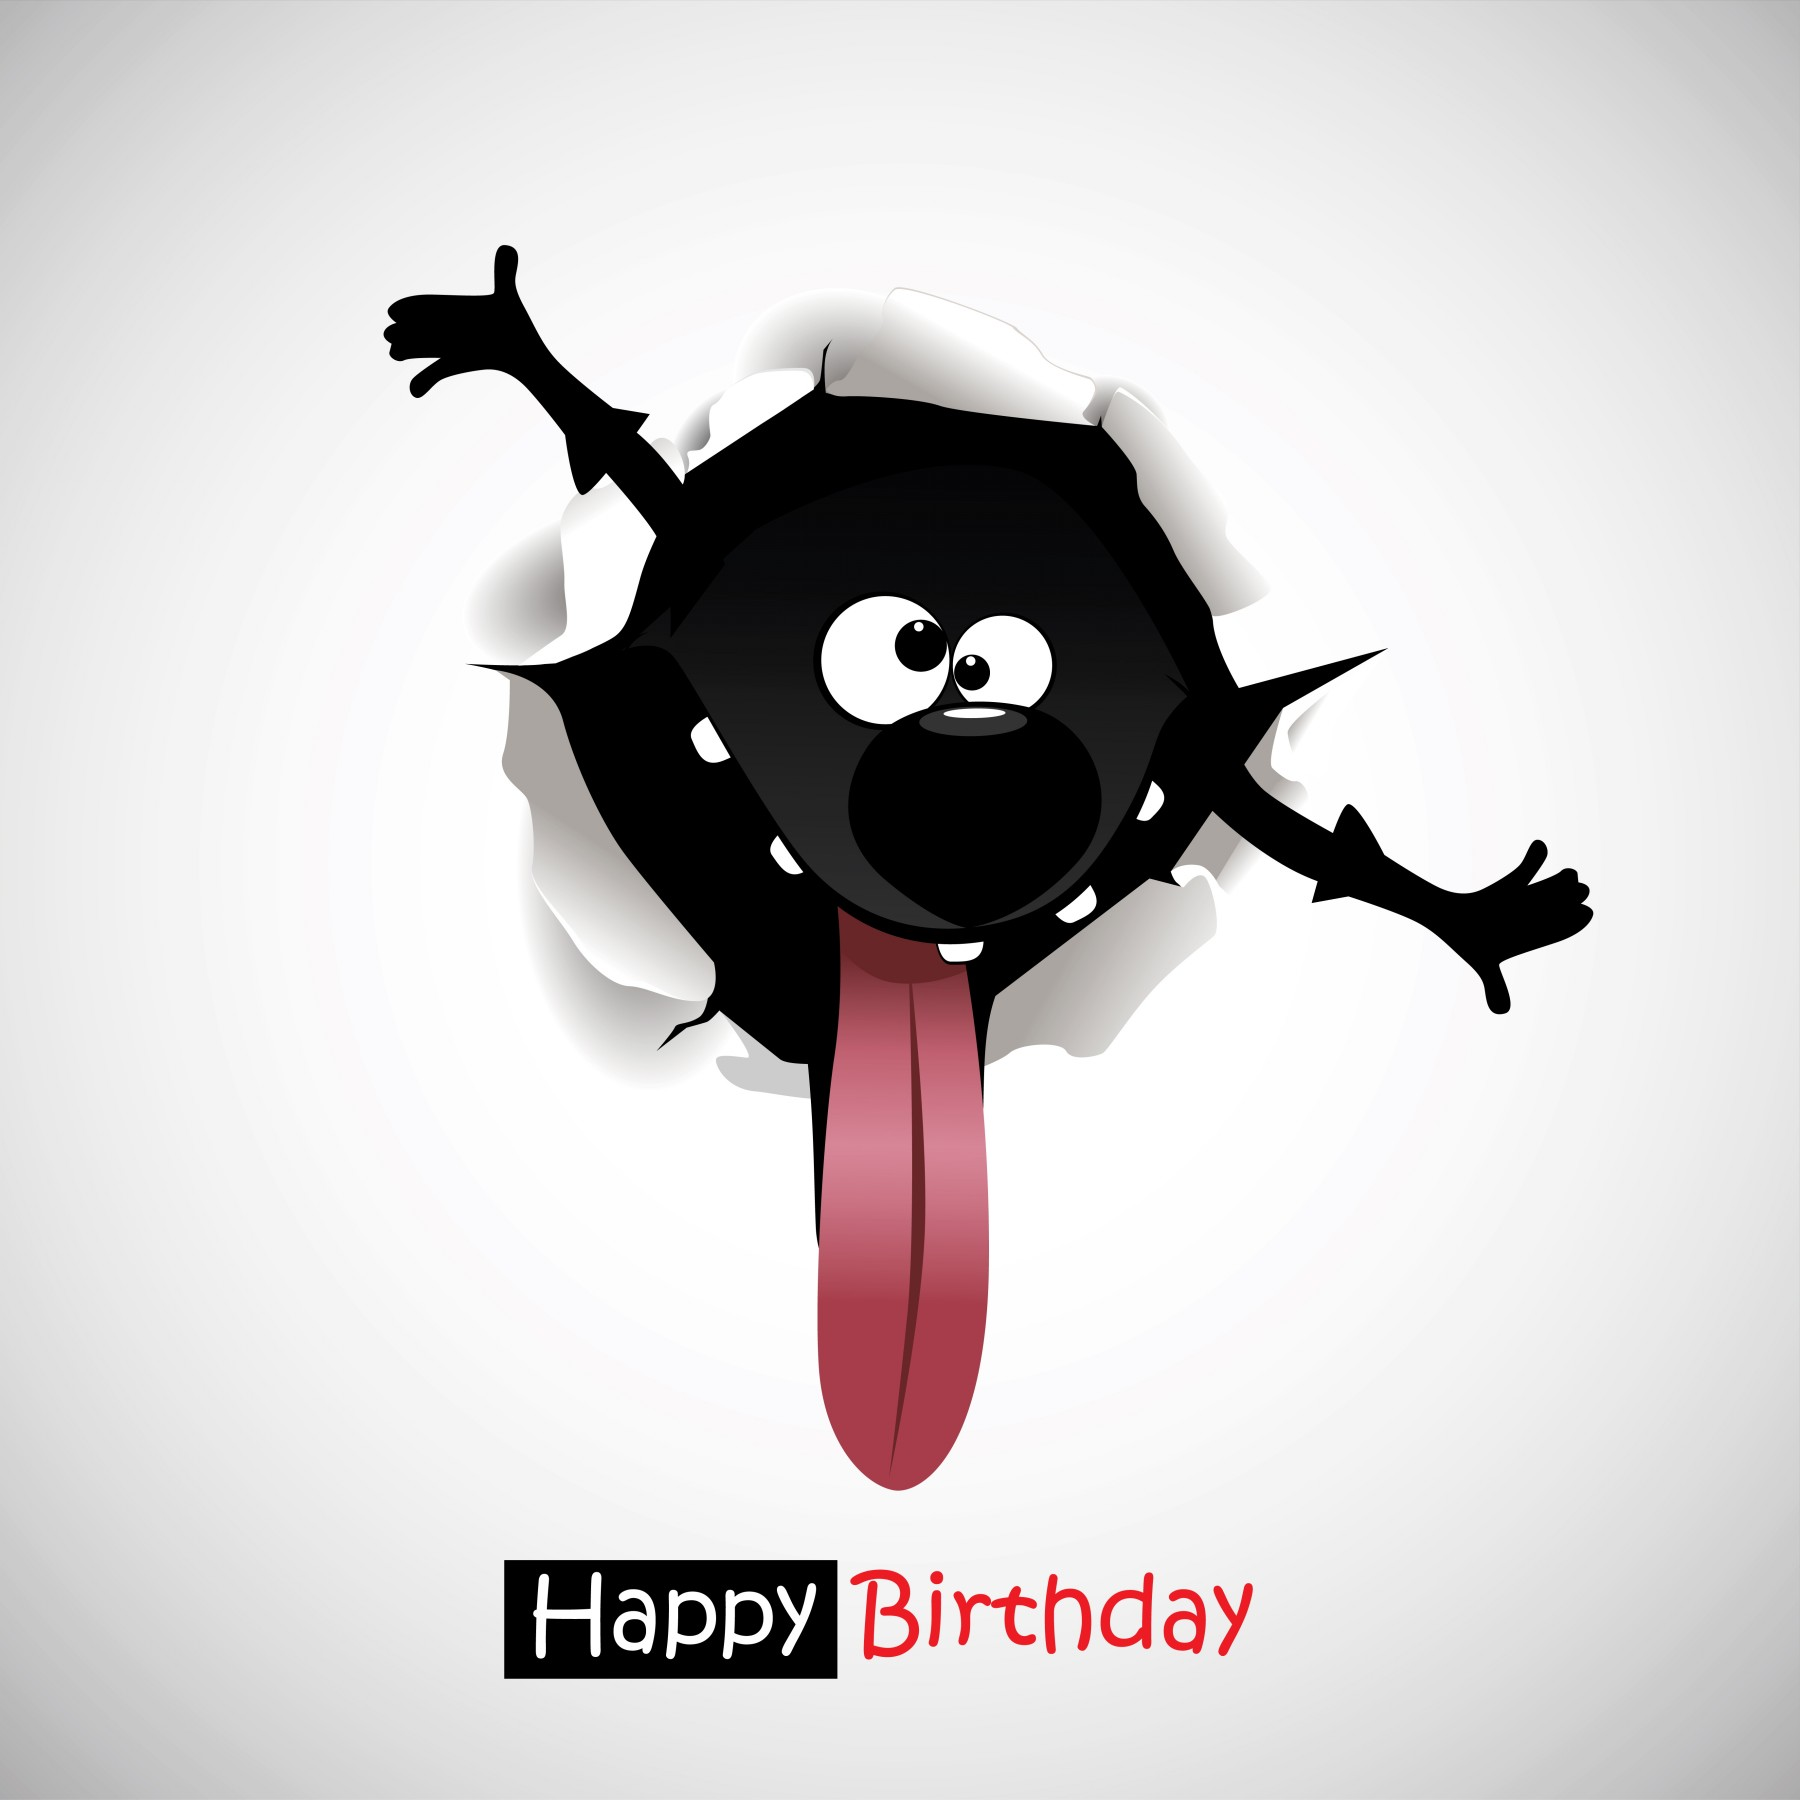 25 Happy Birthday Creative & Funny Greeting Cards - ELSOAR